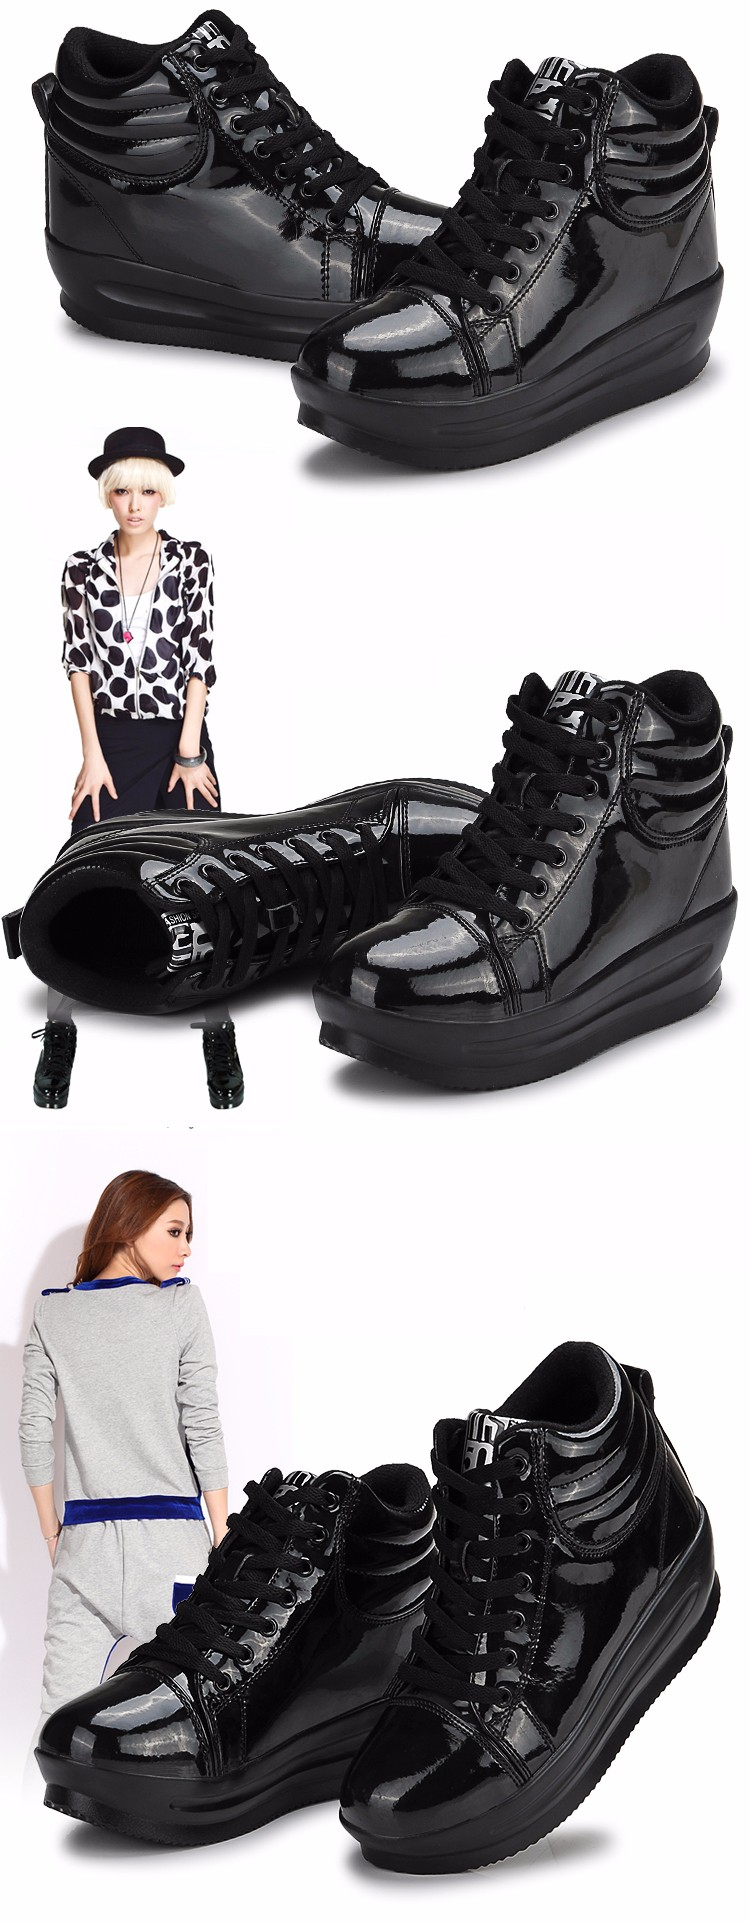 KUYUPP 2016 Fashion Hide Heel Women Casual Shoes Breathable Flat Platform Casual Women Shoes Patent Leather High Top Shoes YD105 (25)